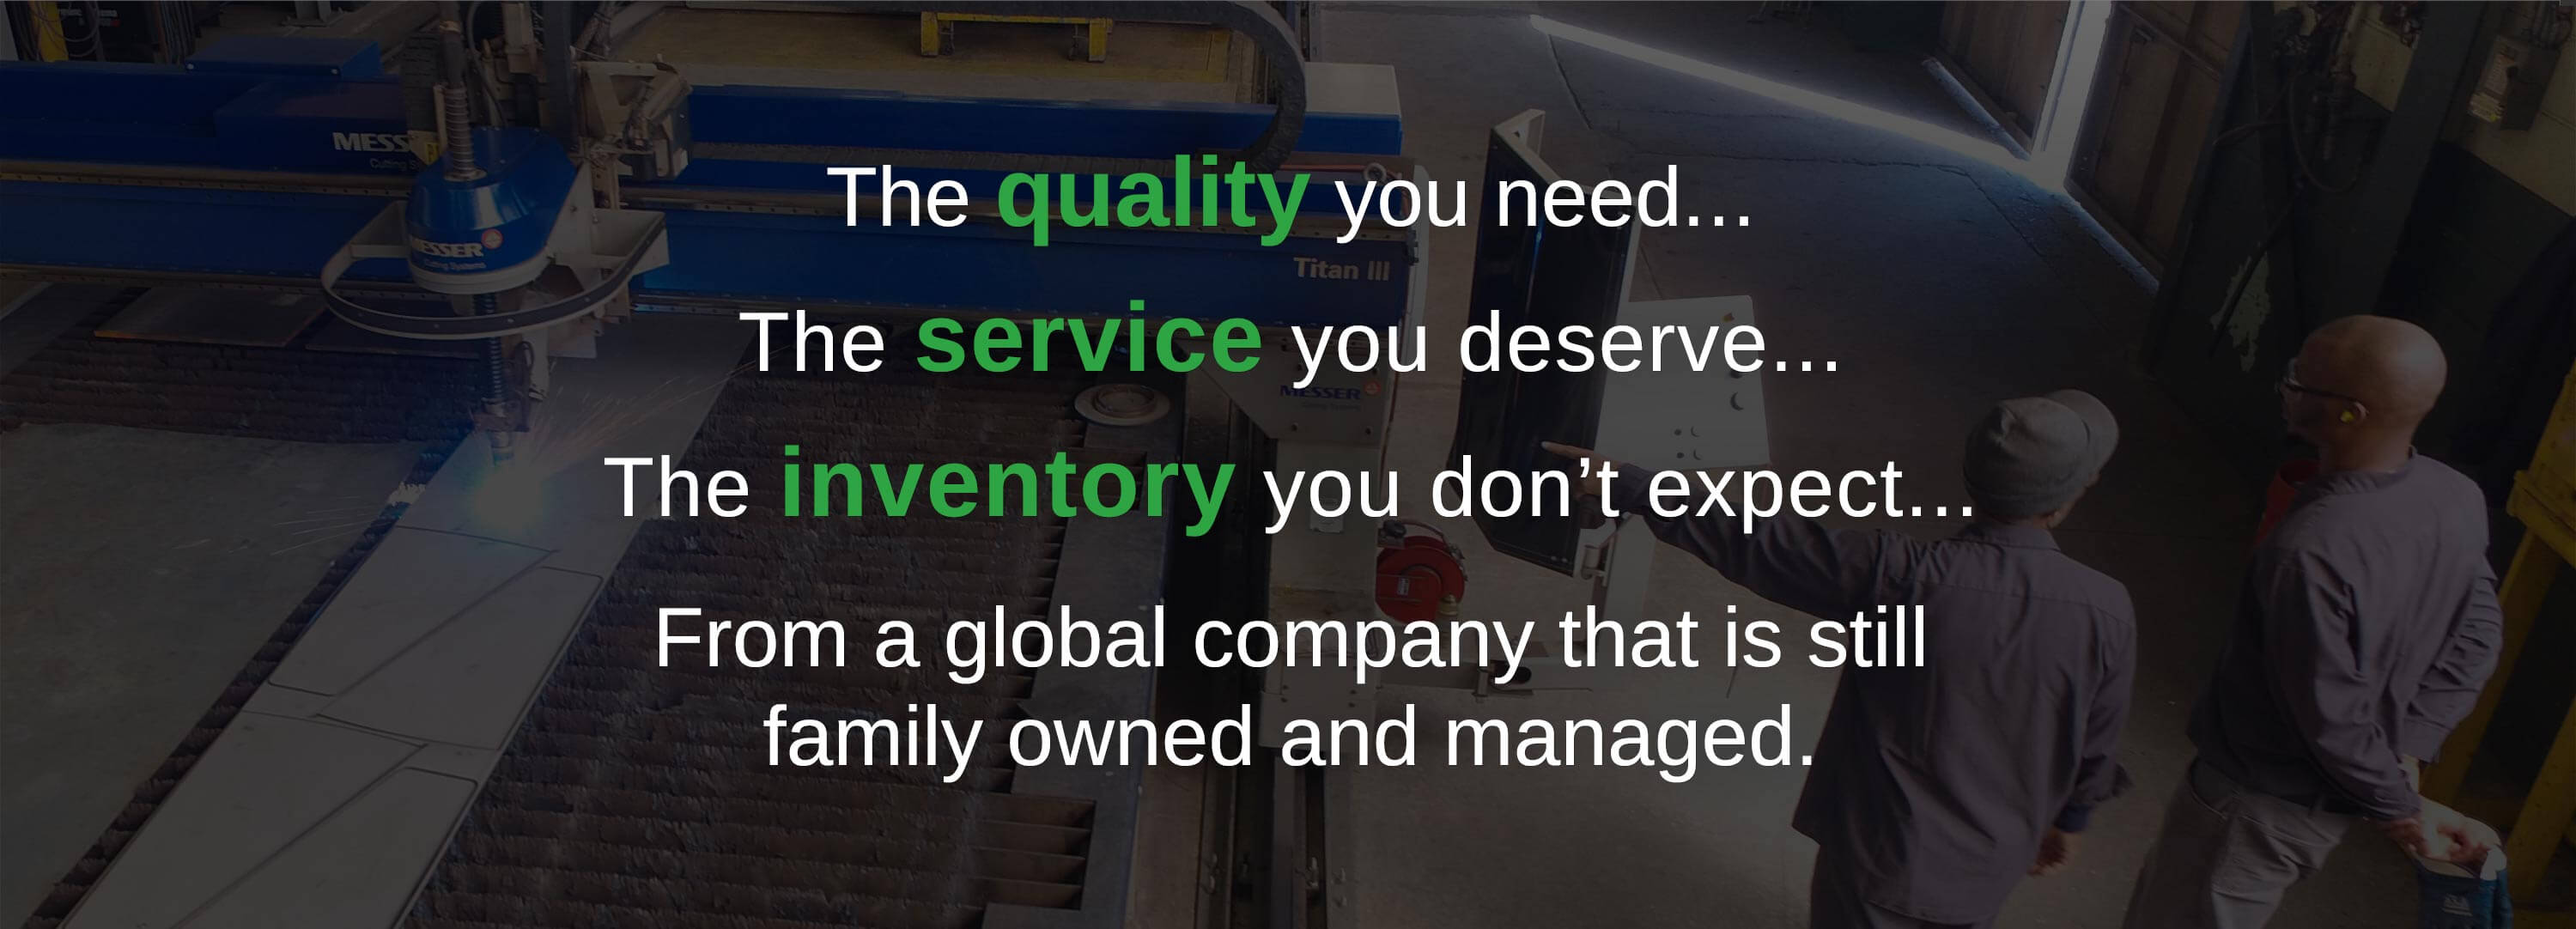 The quality you need, the service you expect, the inventory you don't expect